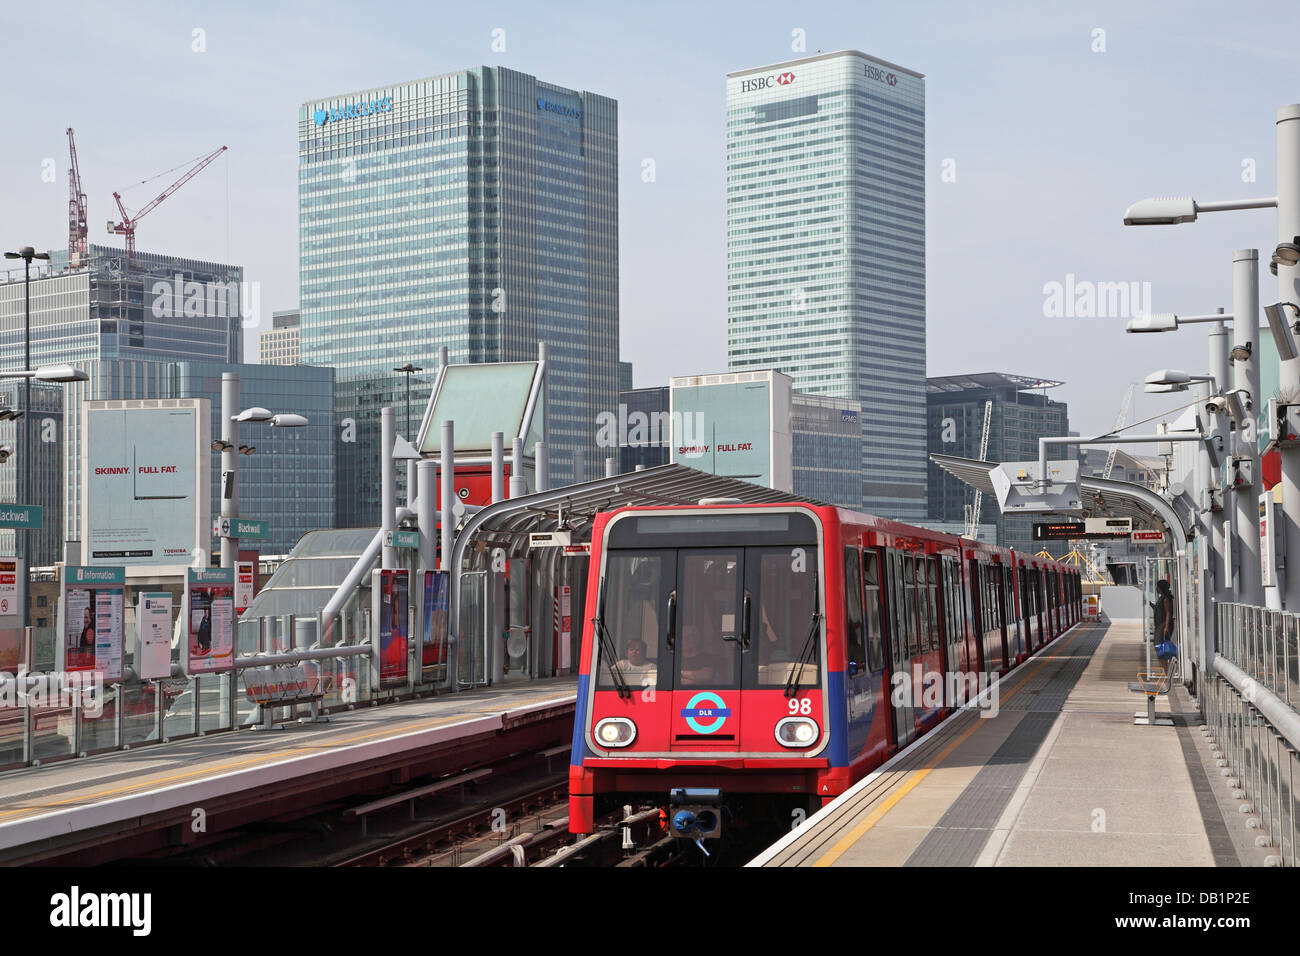 A London Docklands Light Railway train arrives at Poplar station with the Canary Wharf business district in the - Stock Image